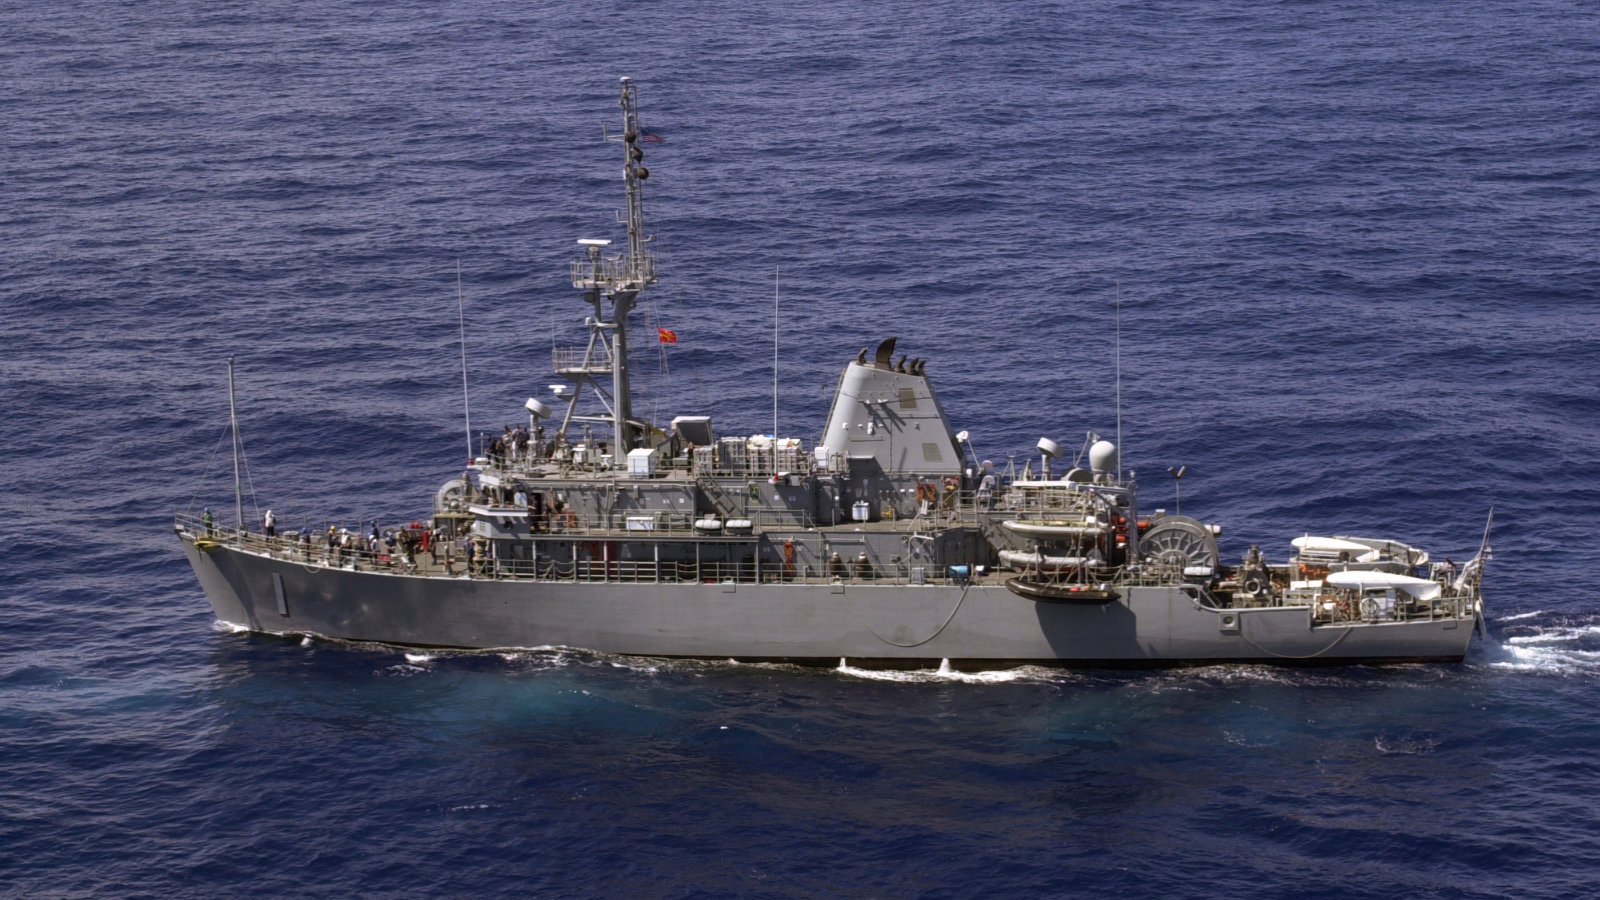 US Navy's Wooden Avengers Are Real-Life Minesweepers